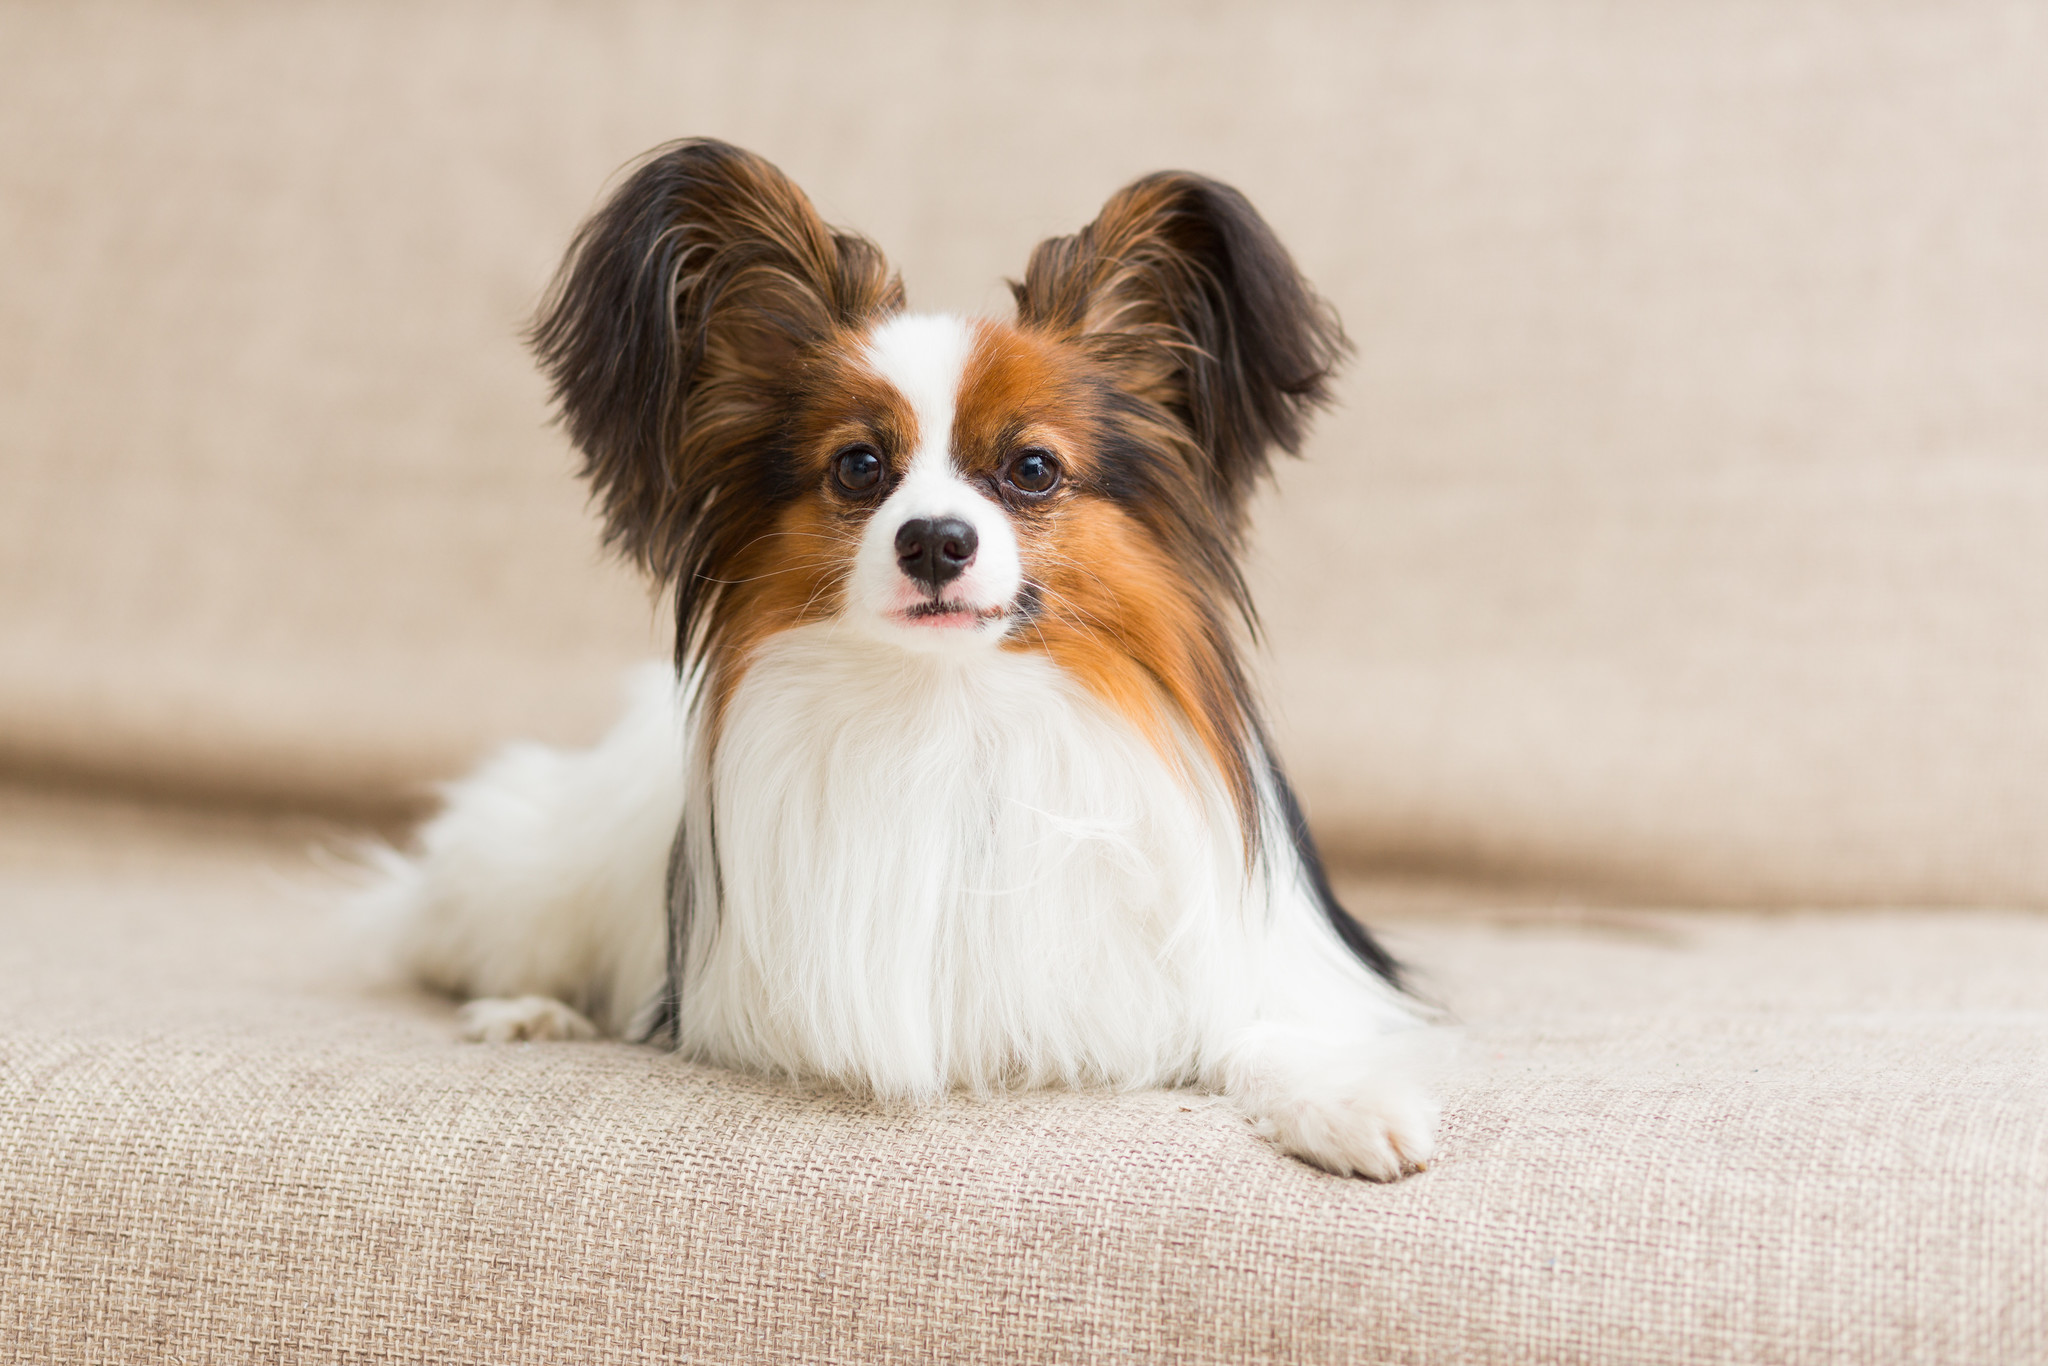 Dog Grooming Q&A